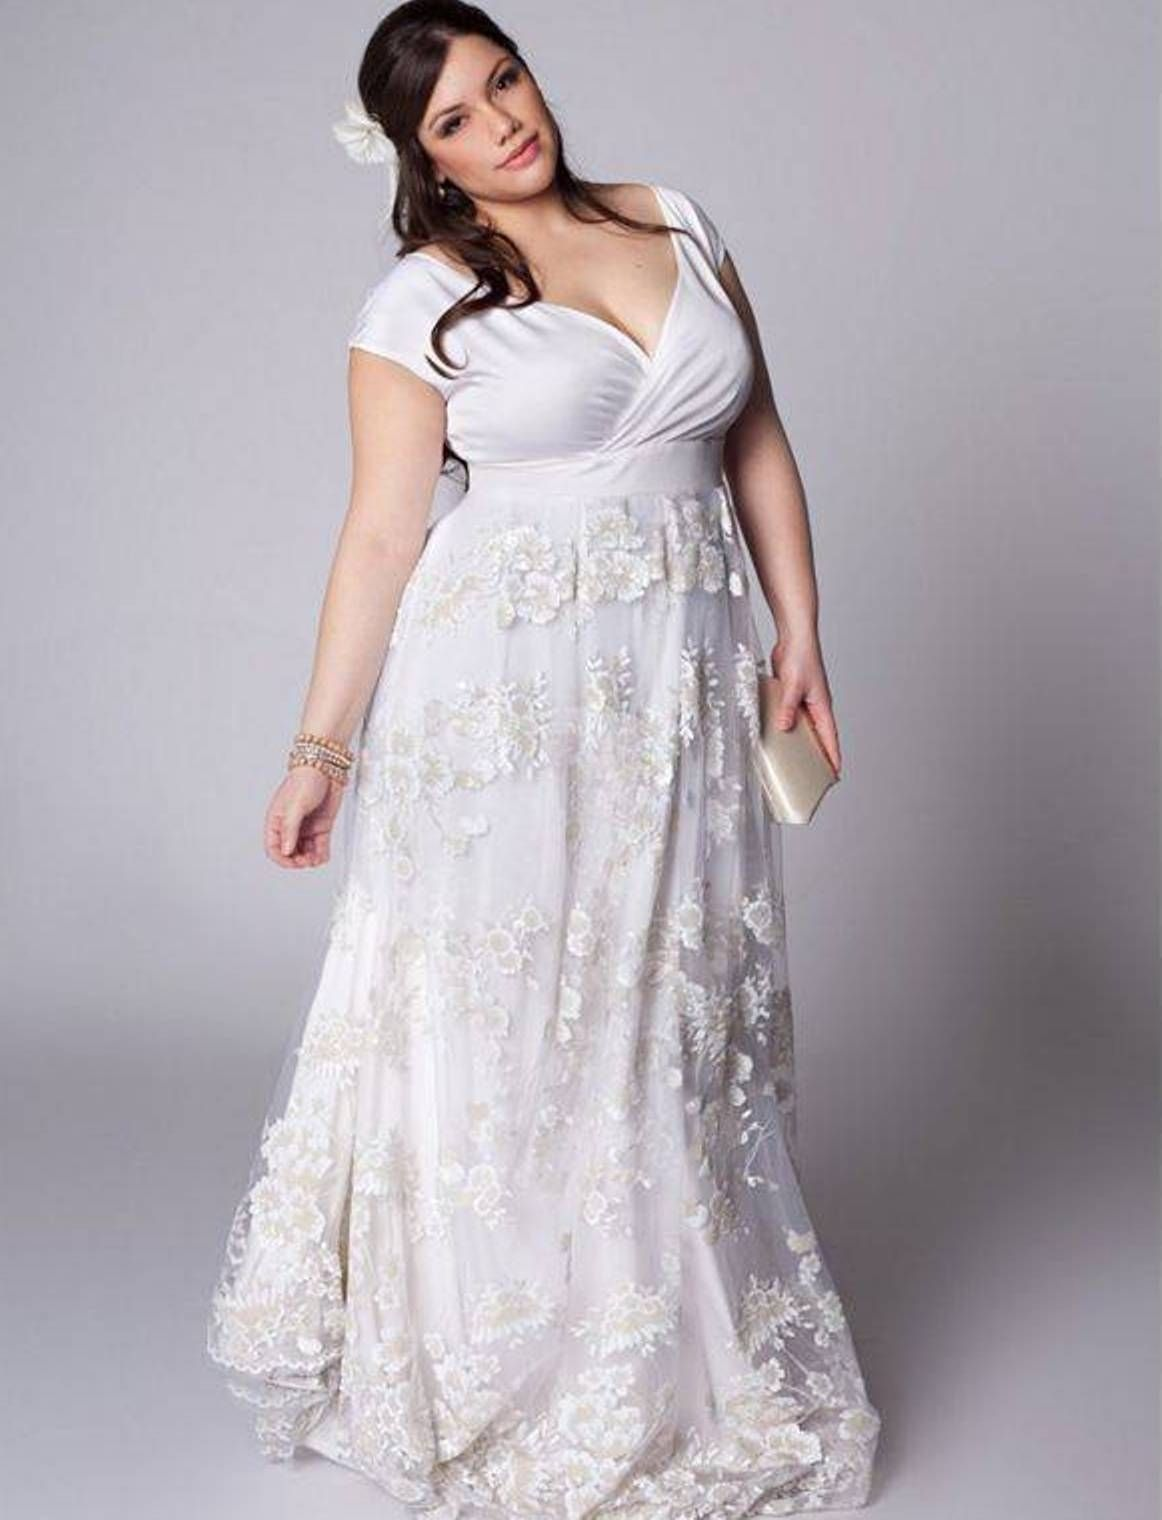 Hawaiian Wedding Dresses Plus Size Wedding Idea Tips Pictures And Photos Casual Wedding Dress Casual Beach Wedding Dress Plus Size Wedding Gowns